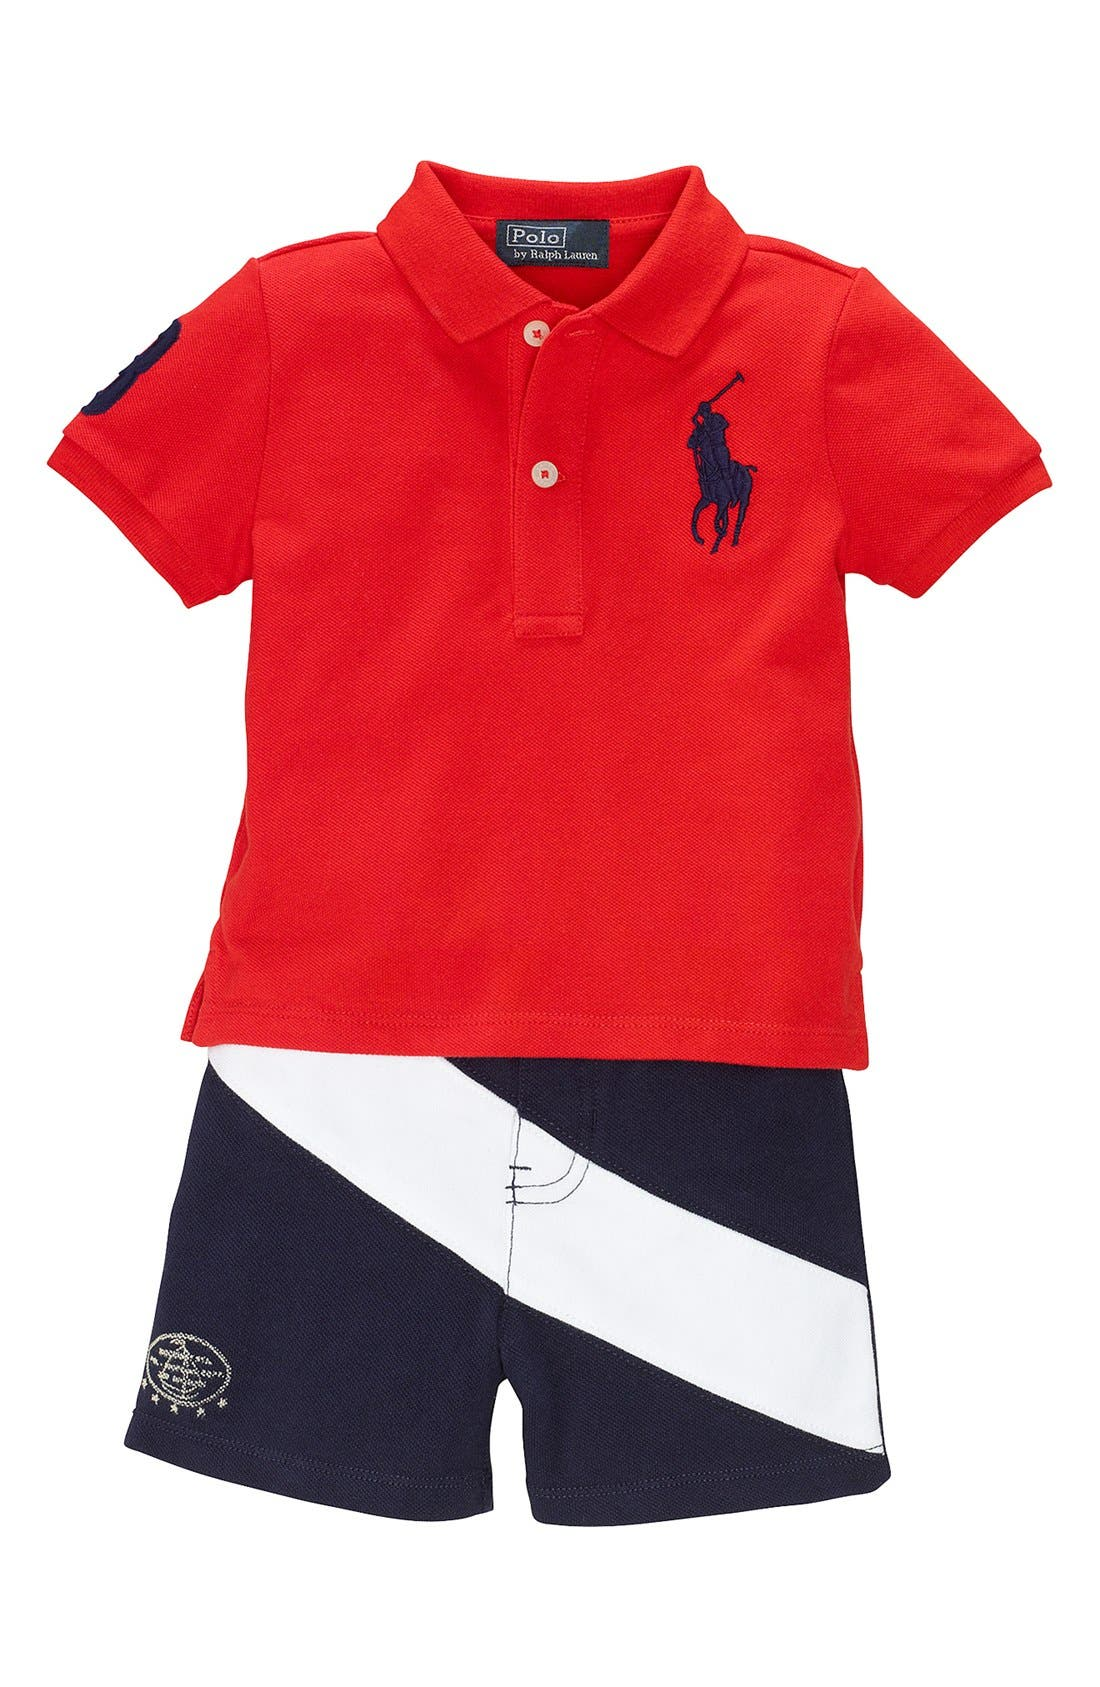 Alternate Image 1 Selected - Ralph Lauren Polo & Knit Shorts (Baby Boys)